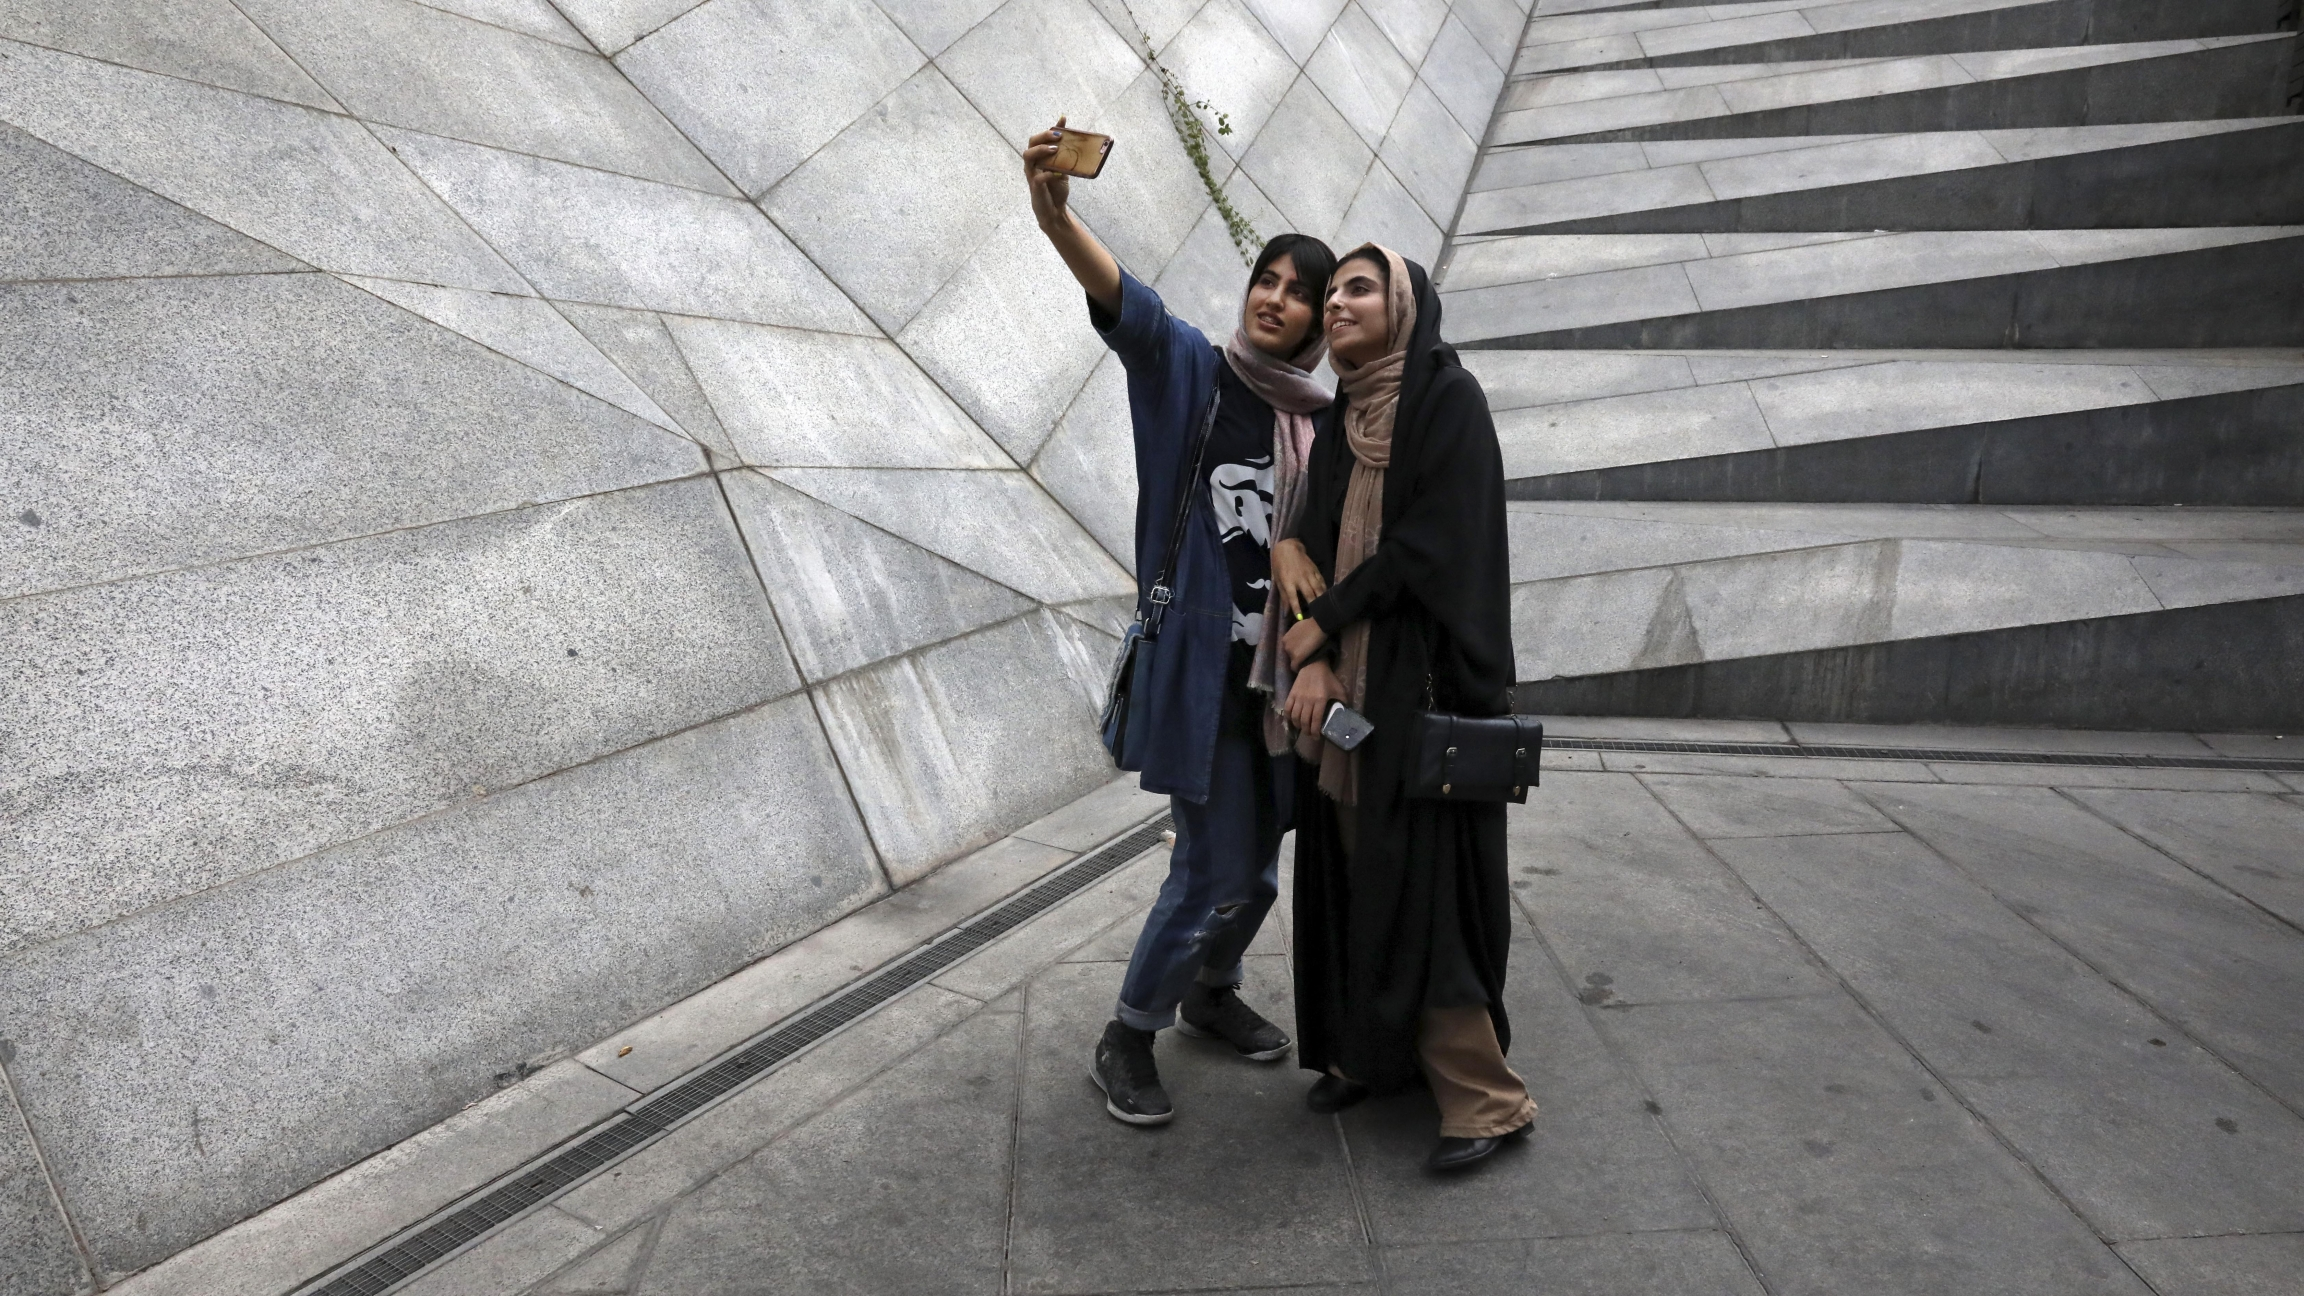 Two Iranian women take a selfie outside a shopping mall in northern Tehran, Iran, on July 2, 2019.